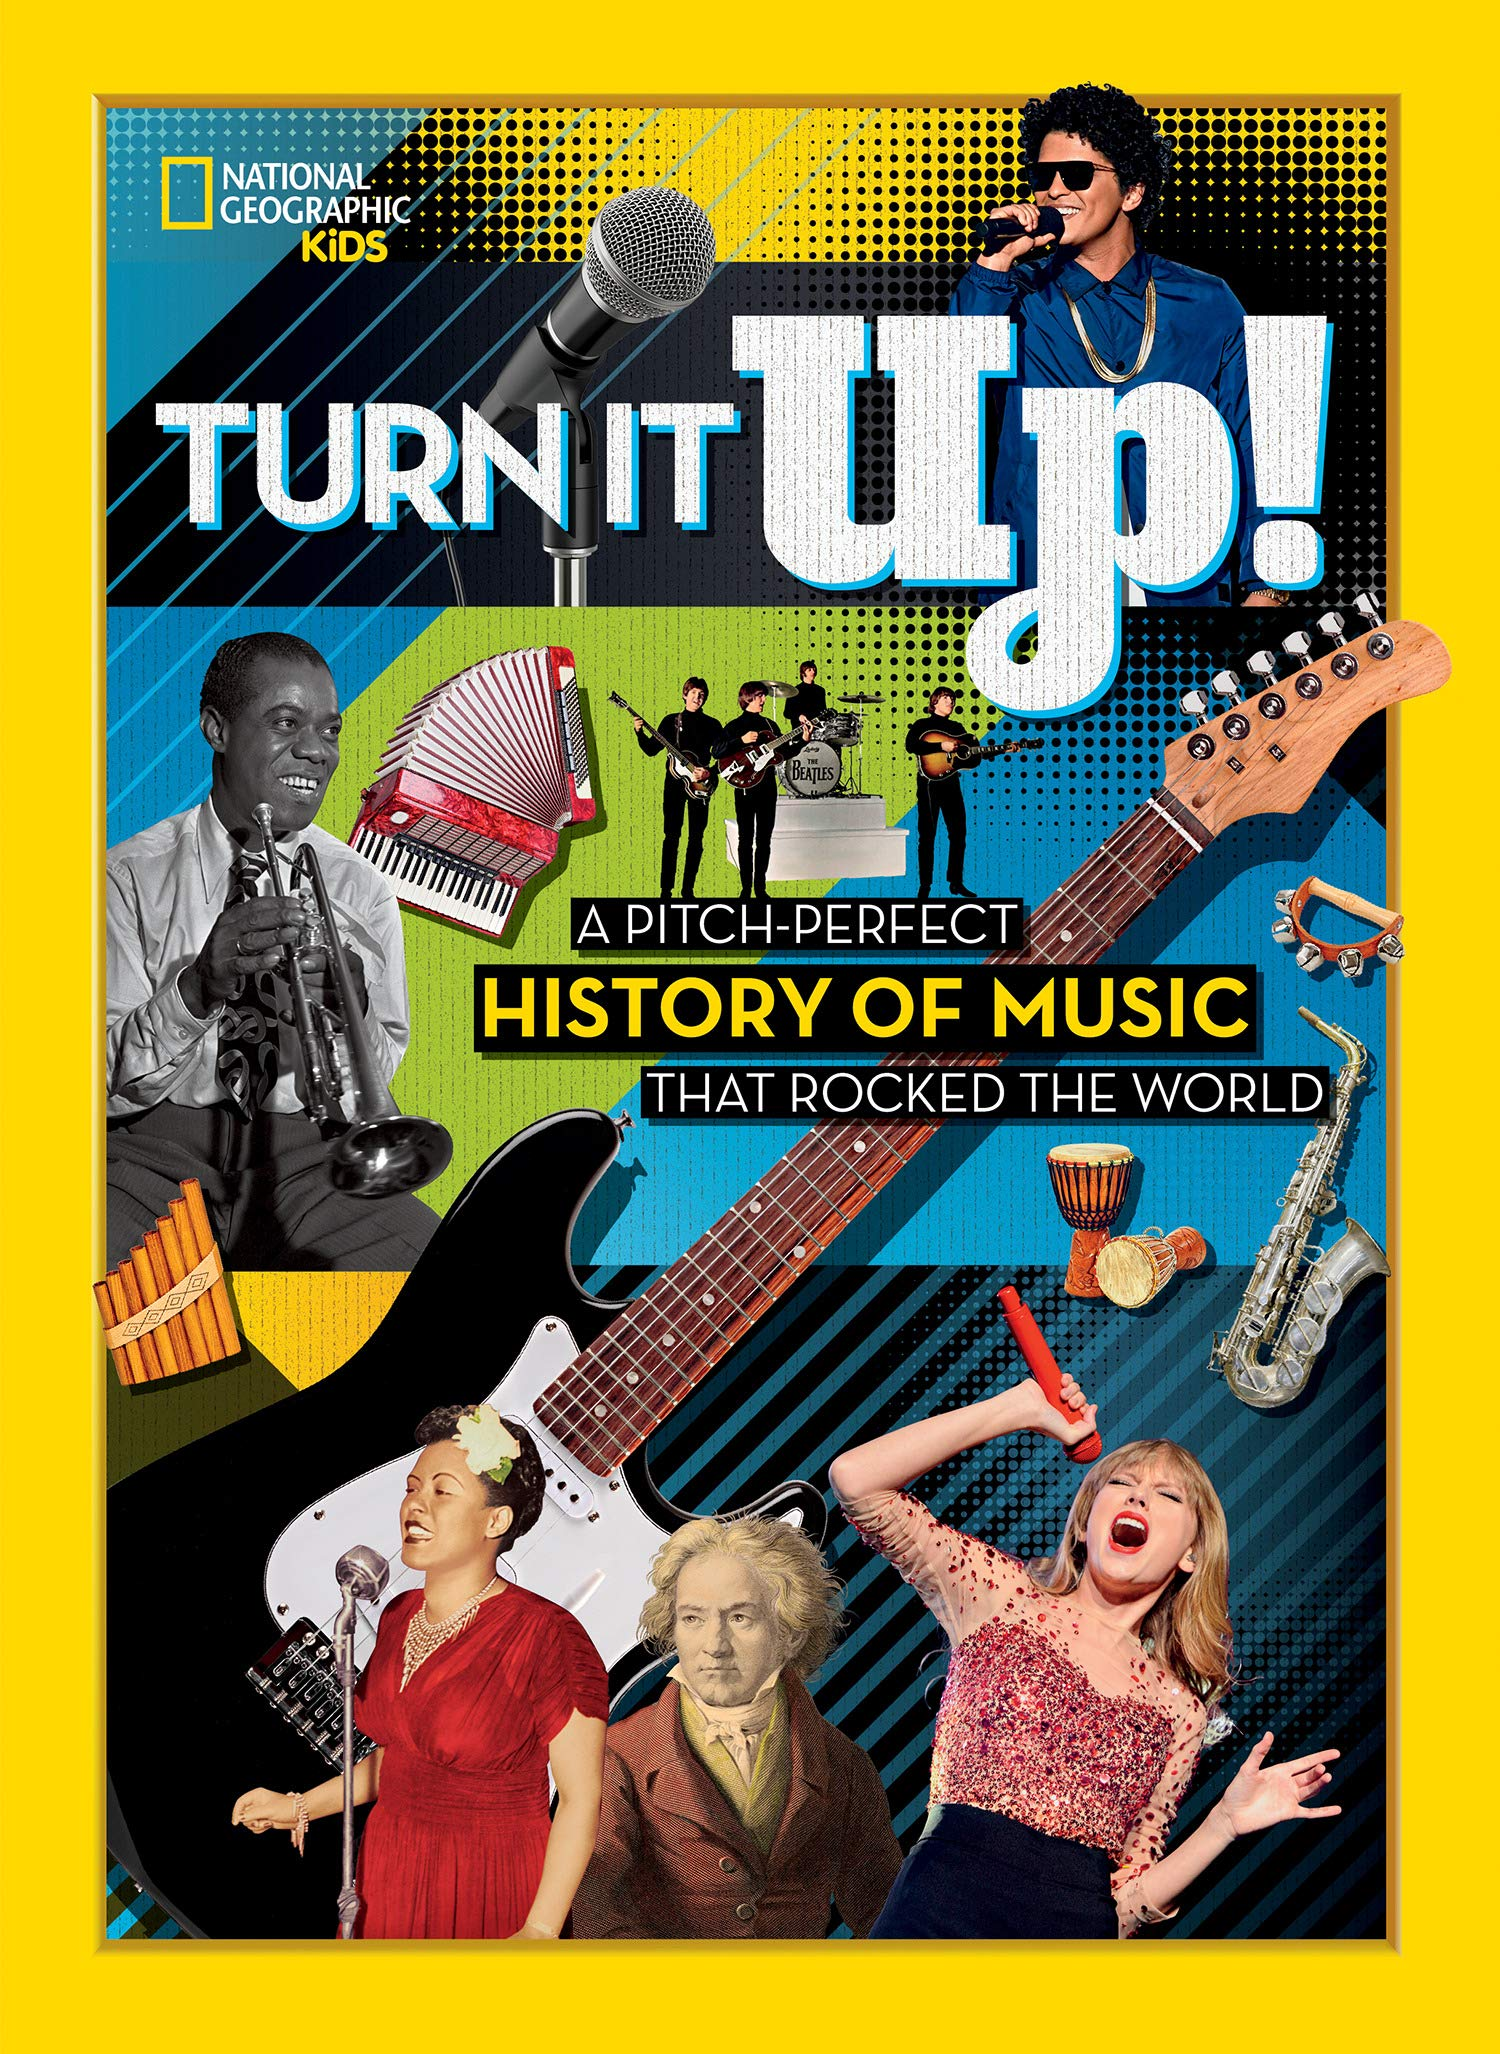 Turn it Up!: A Pitch-Perfect History of Music that Rocked the World